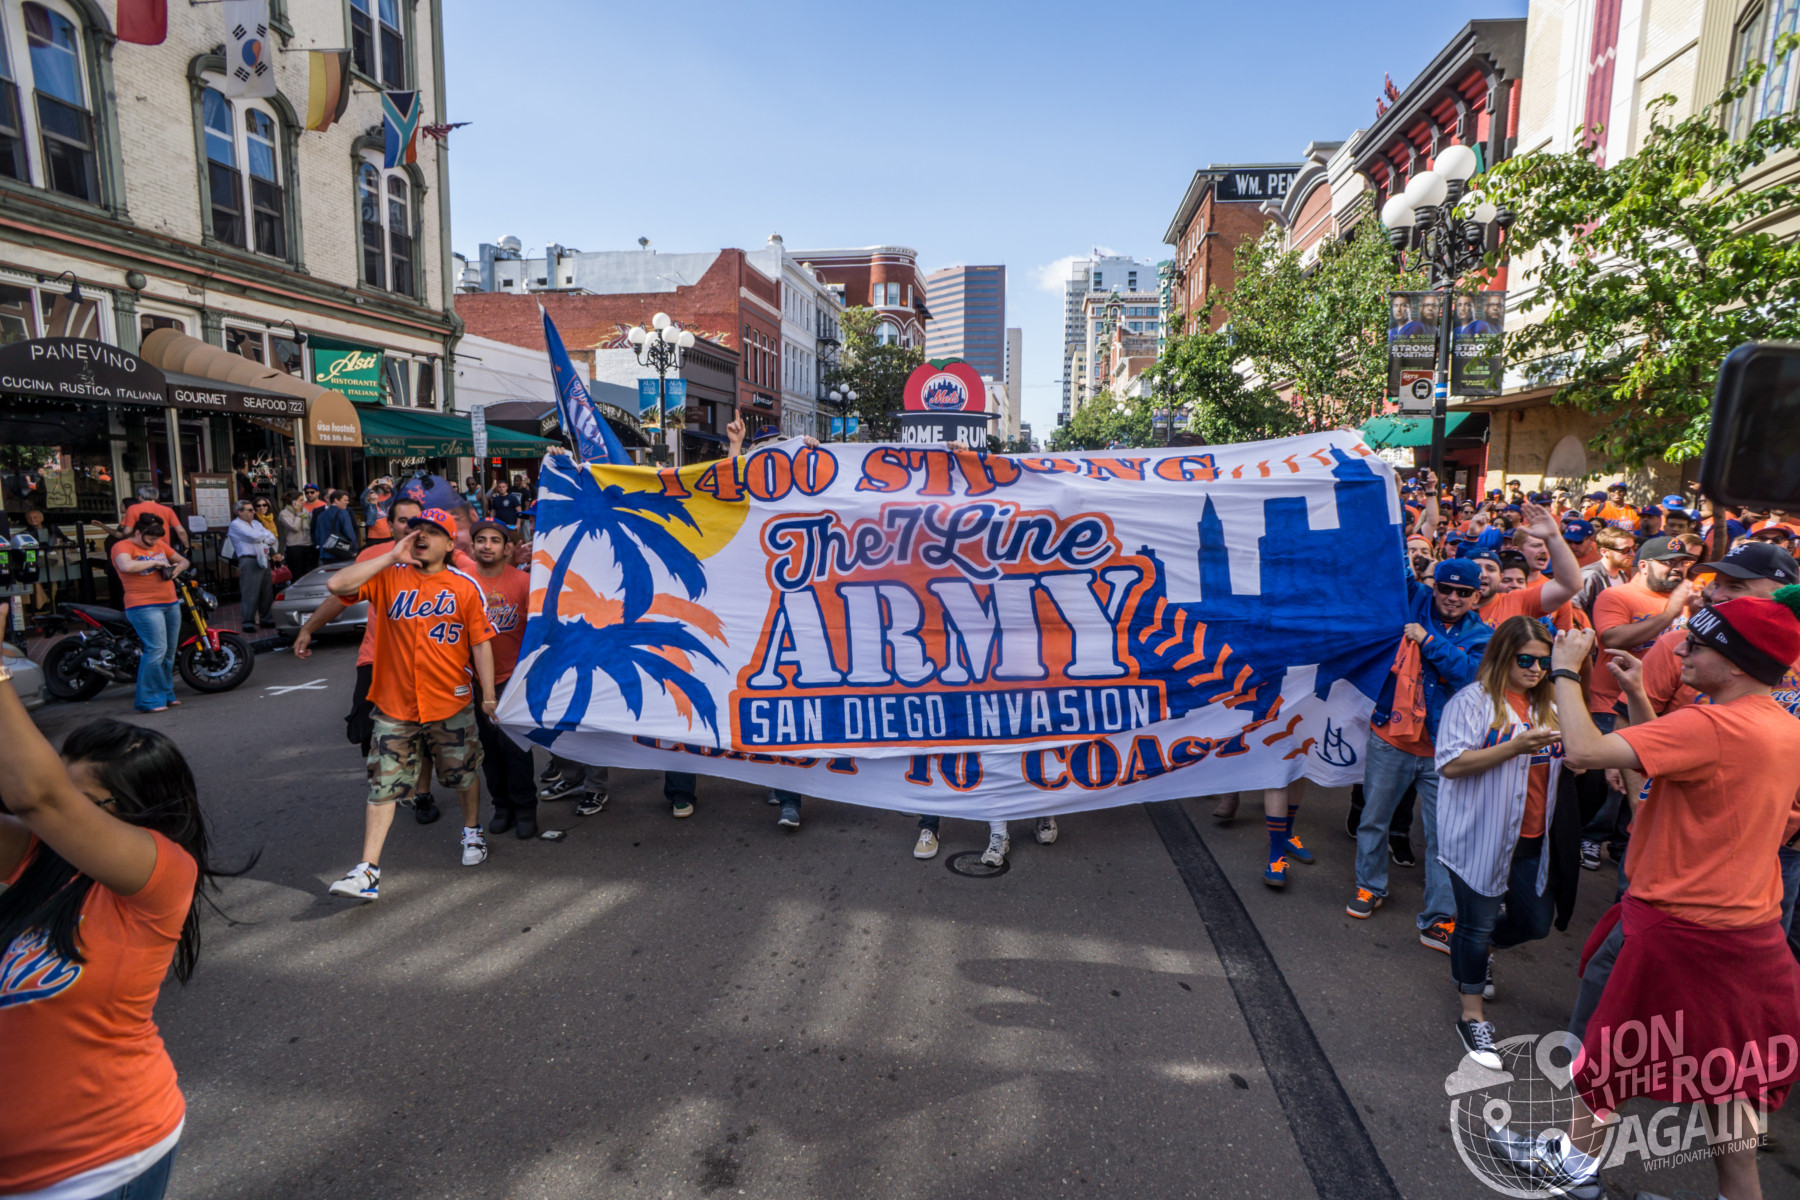 de00a81b Every game's a party with the 7 Line Army - Jon the Road Again - Travel  with Jonathan Rundle